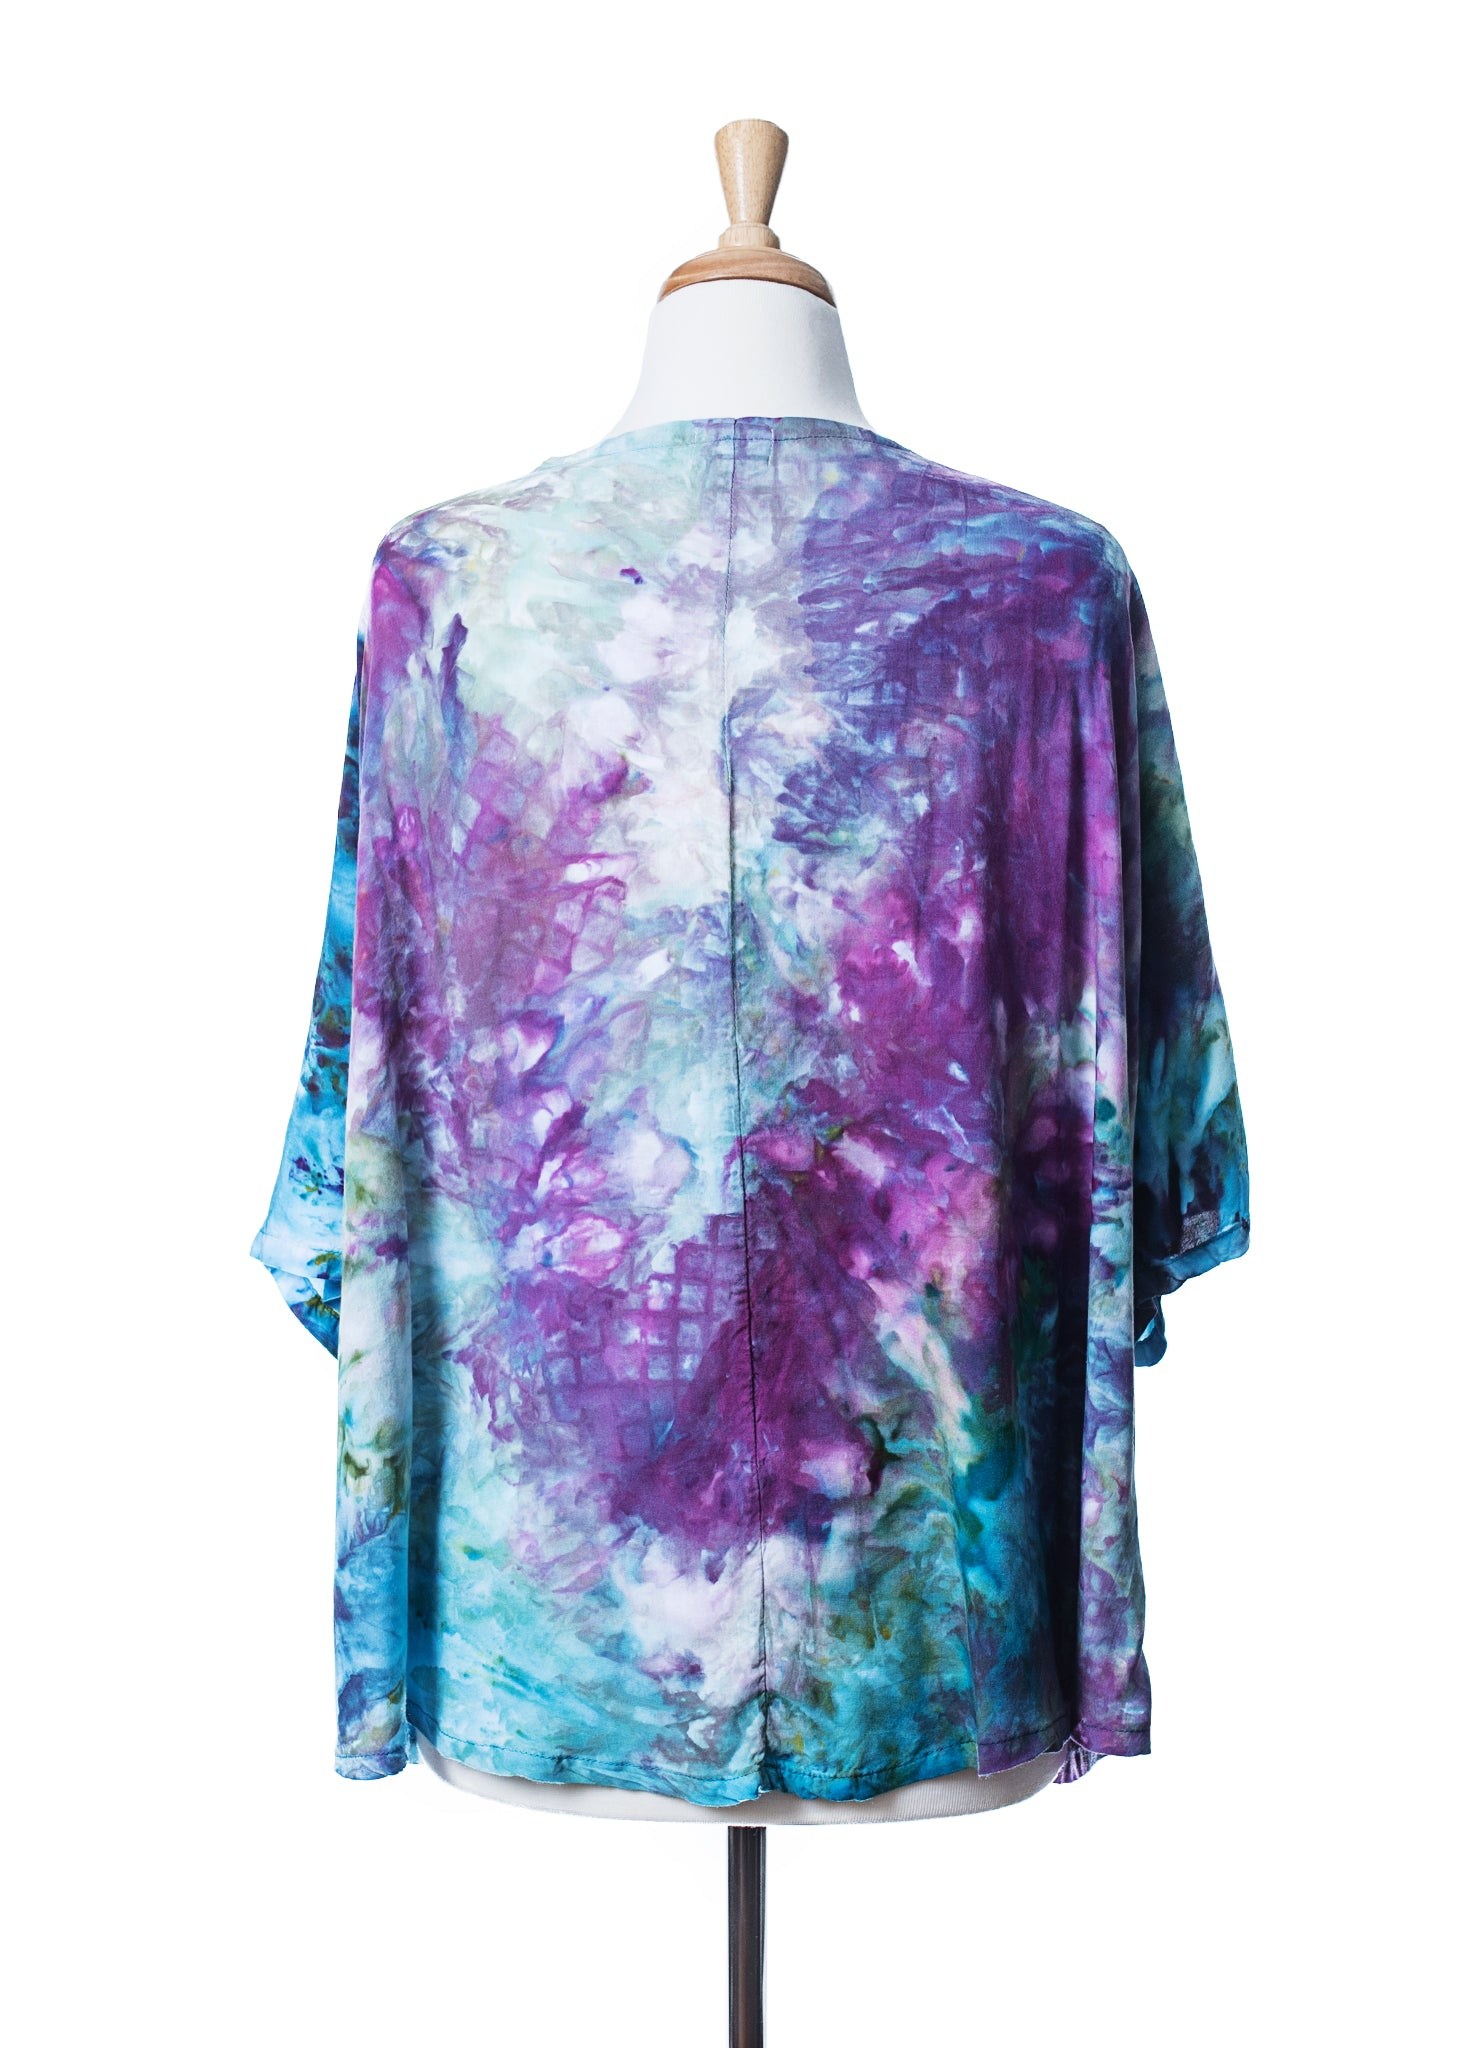 Hand Dyed Easy Rayon Shirt in Monet's Garden - Dyetology